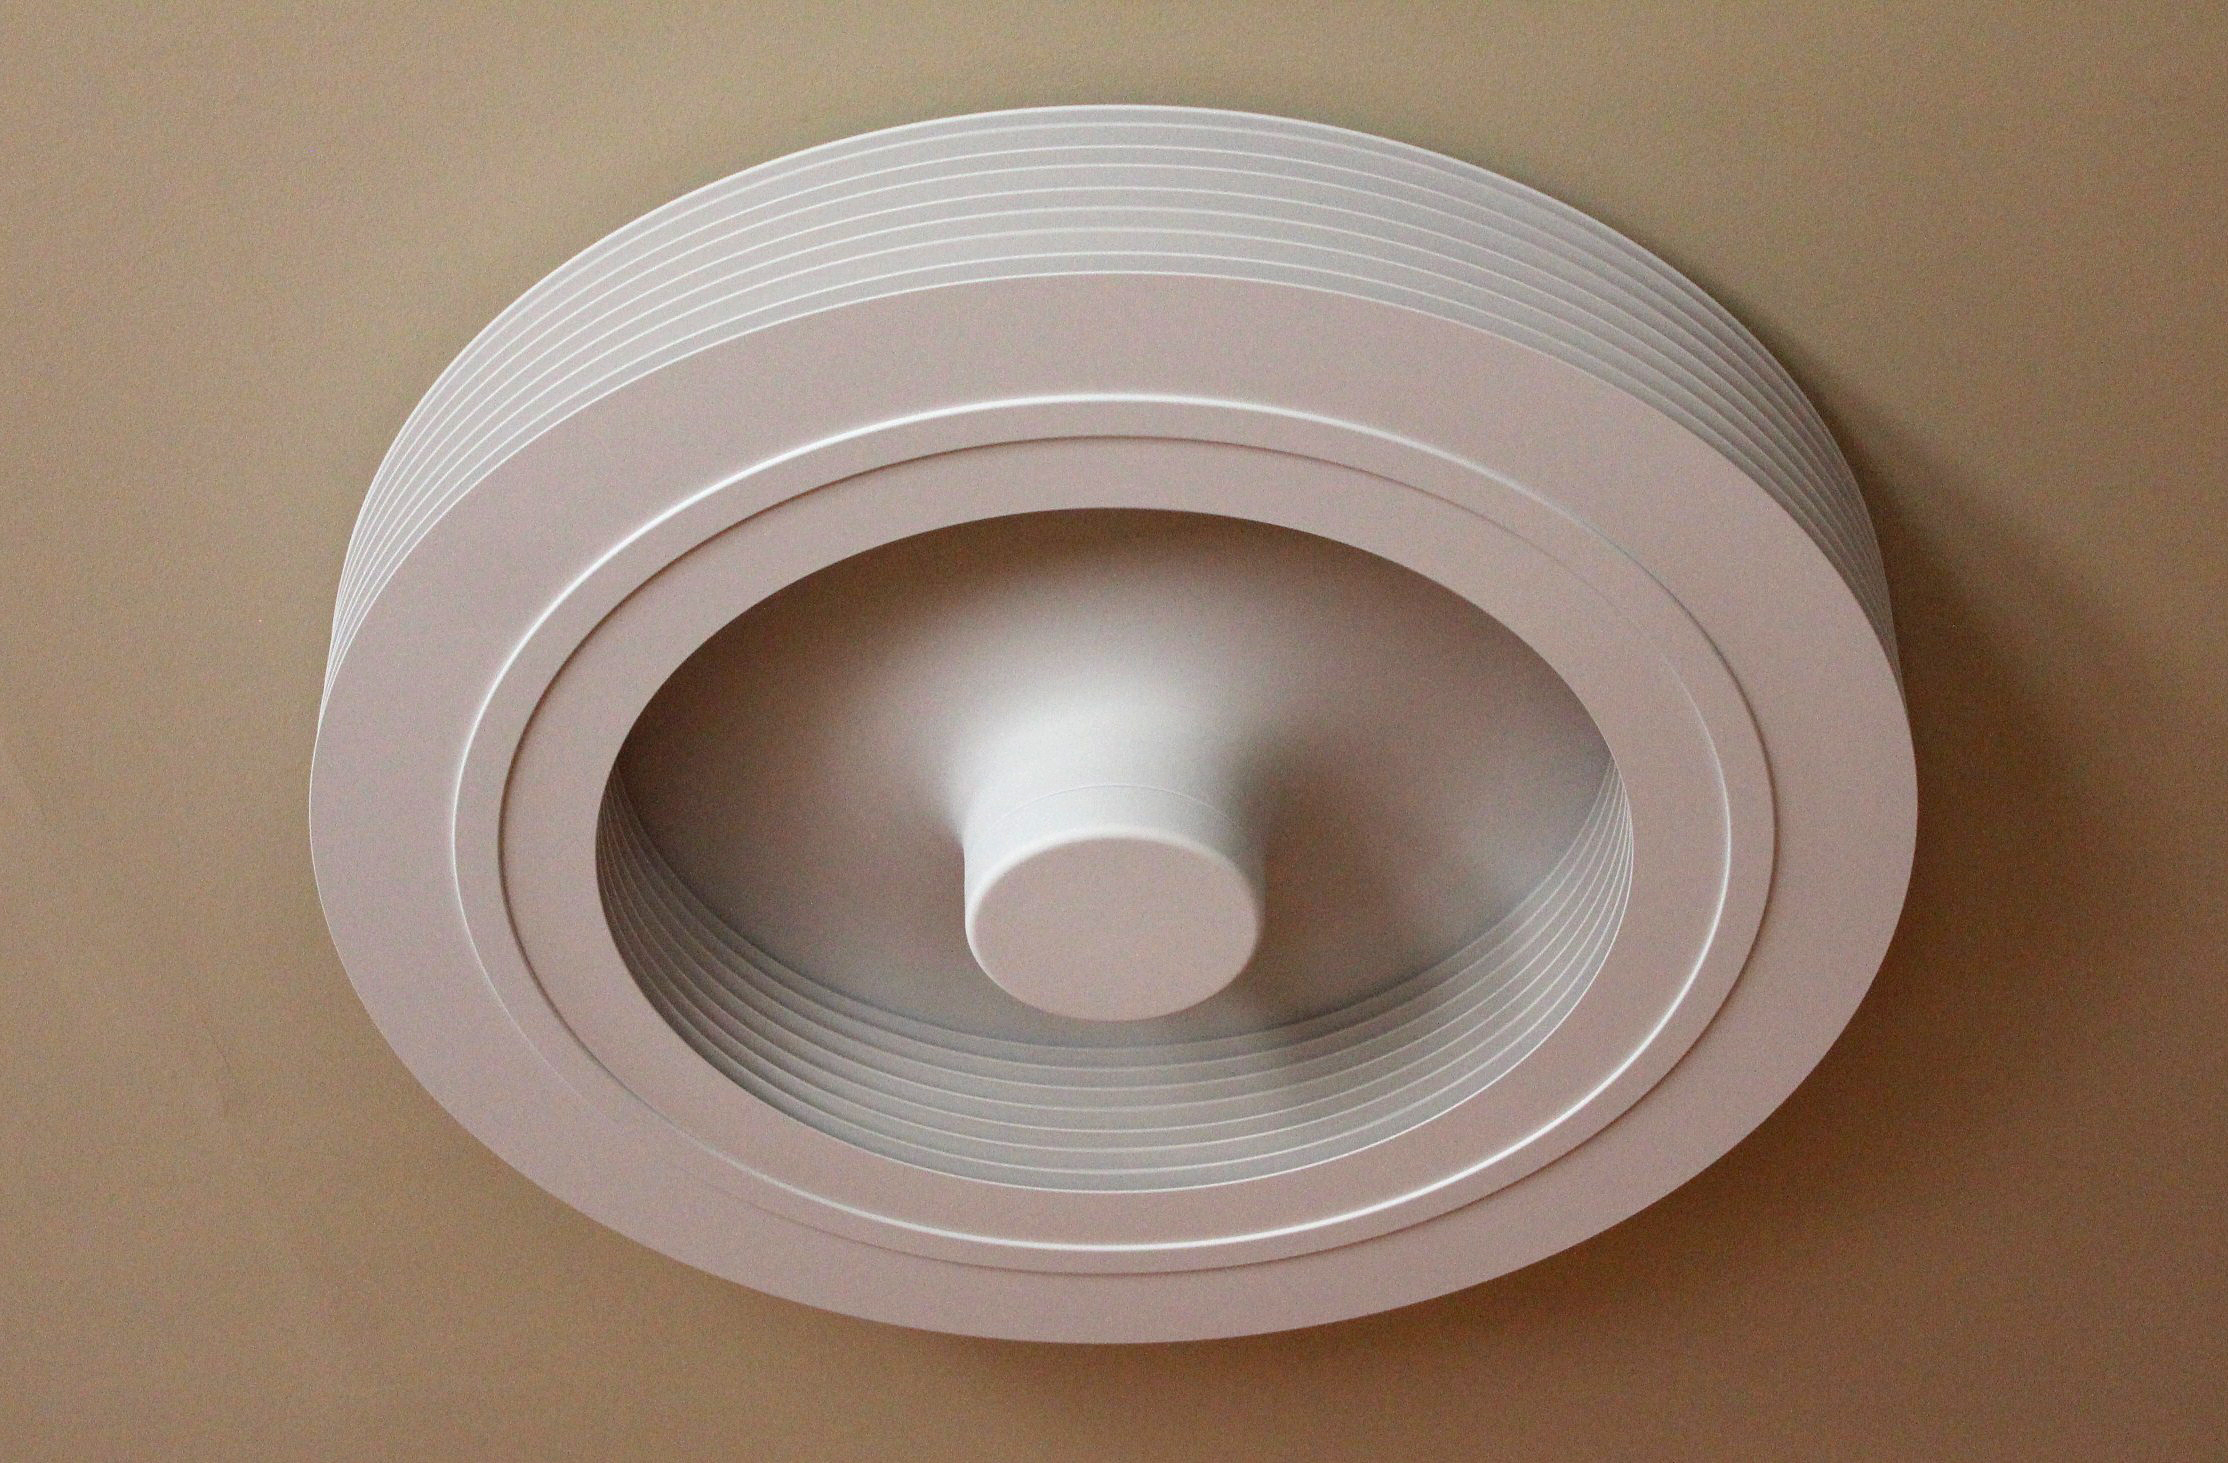 Purdue Research Park Affiliate Launches Bladeless Ceiling